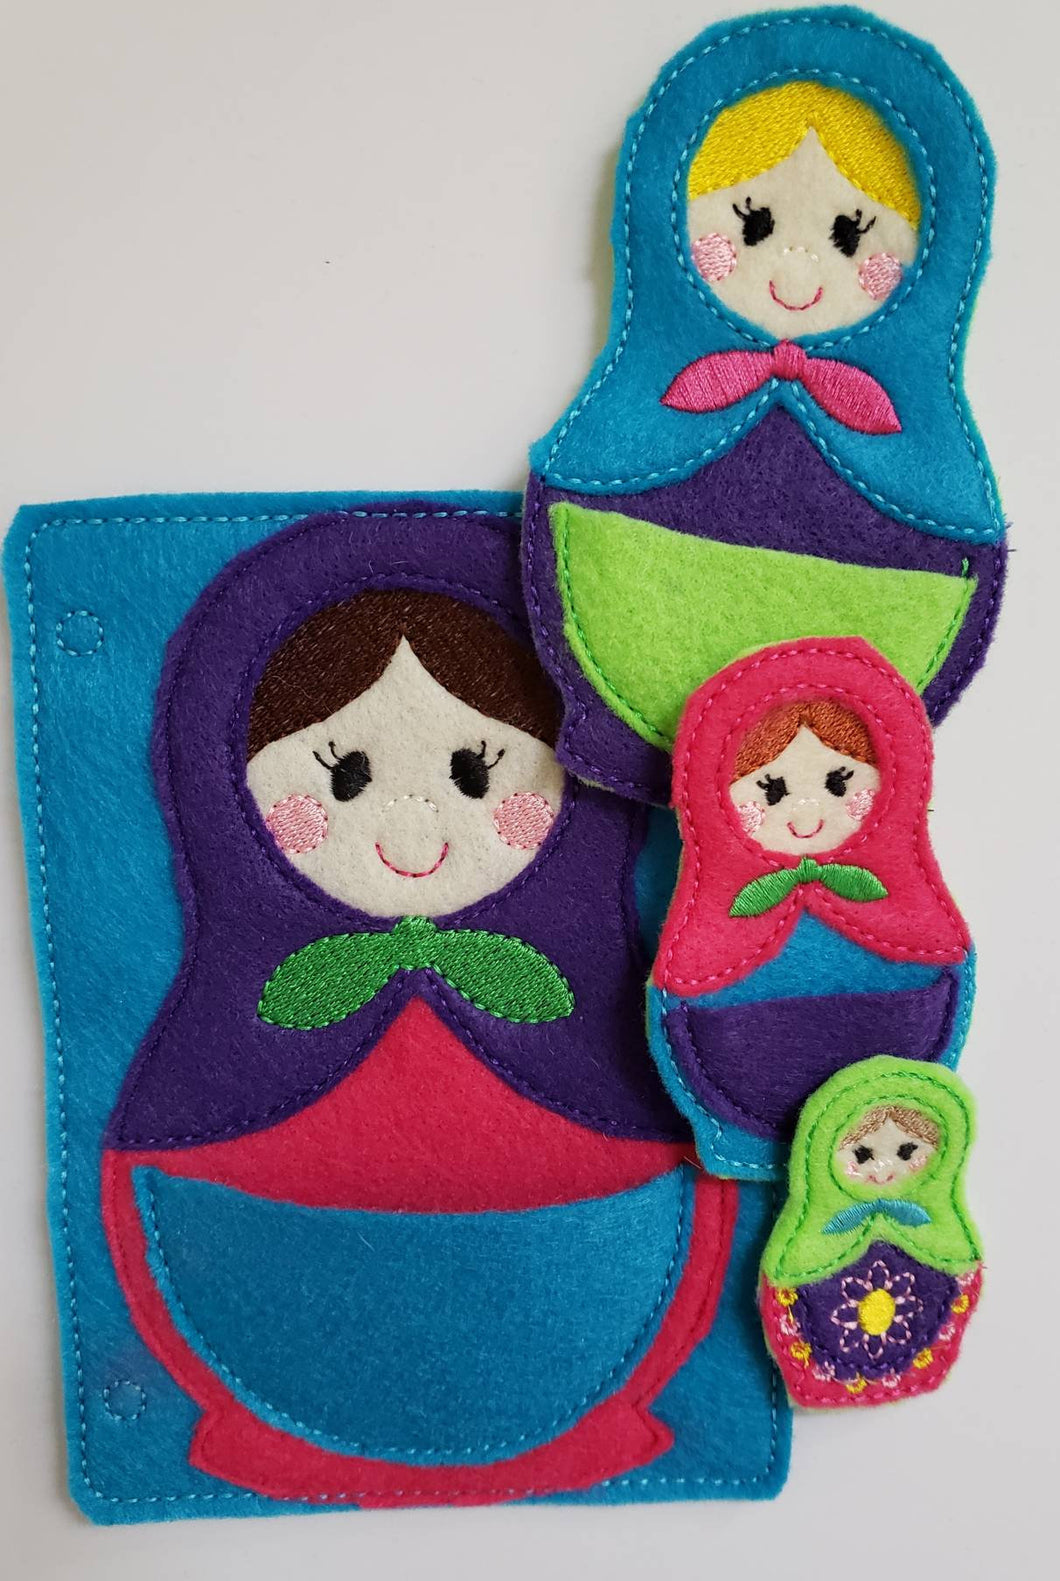 Felt nesting doll quiet book page - toddler quiet book page - stacking dolls - activity page - busy book page